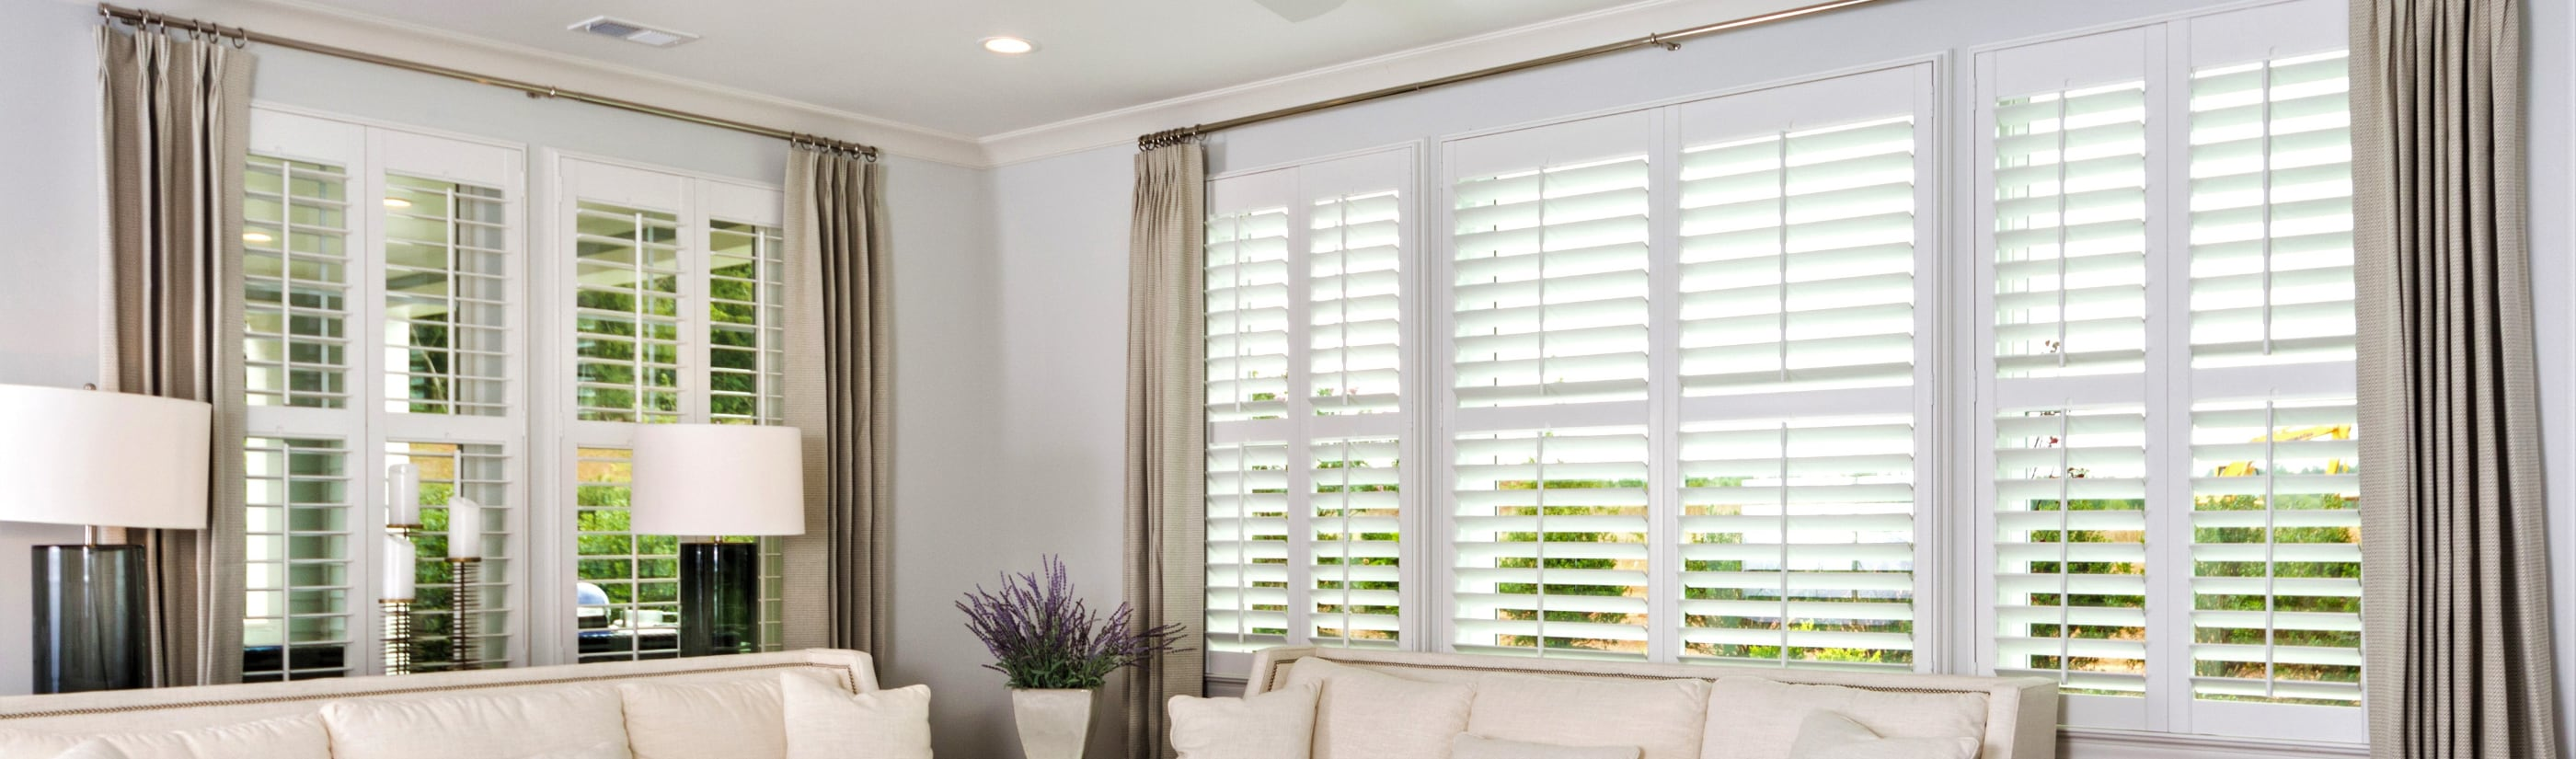 Polywood Shutters Paints In Austin